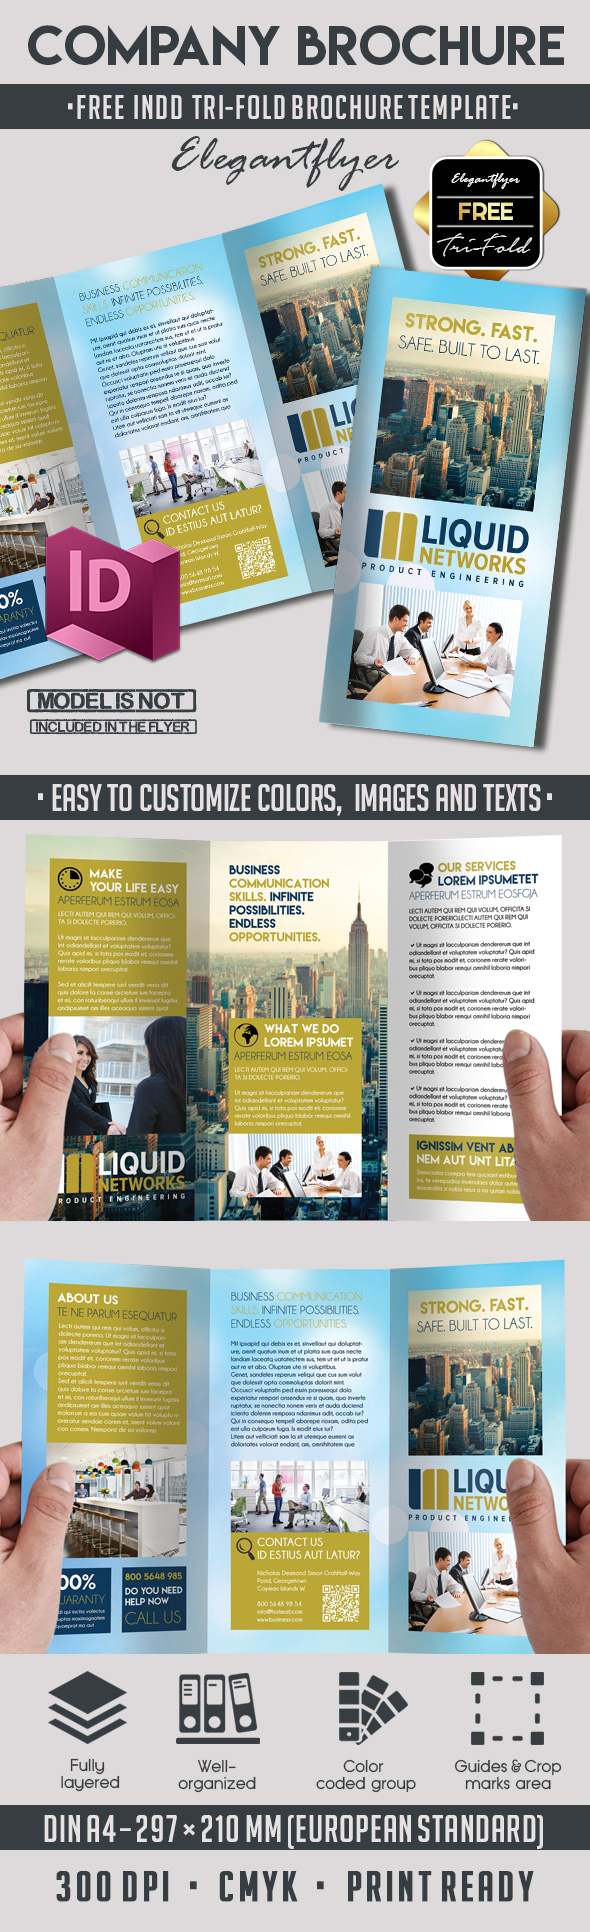 indesign free templates brochure - 5 powerful free adobe indesign brochures templates by